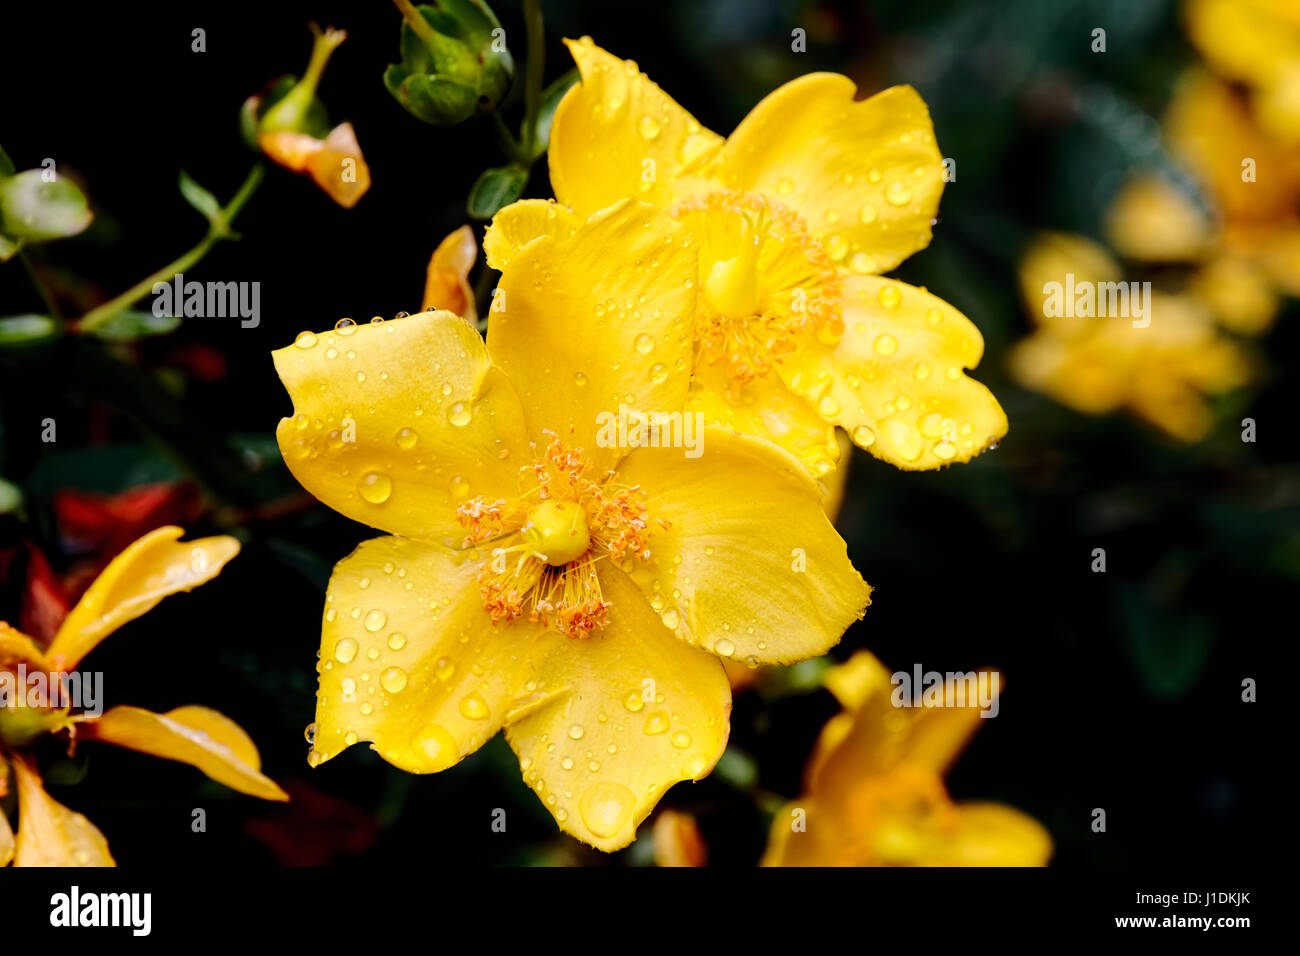 Close-up of two small yellow roses on a bush, the petals of them are covered in morning dew. - Stock Image